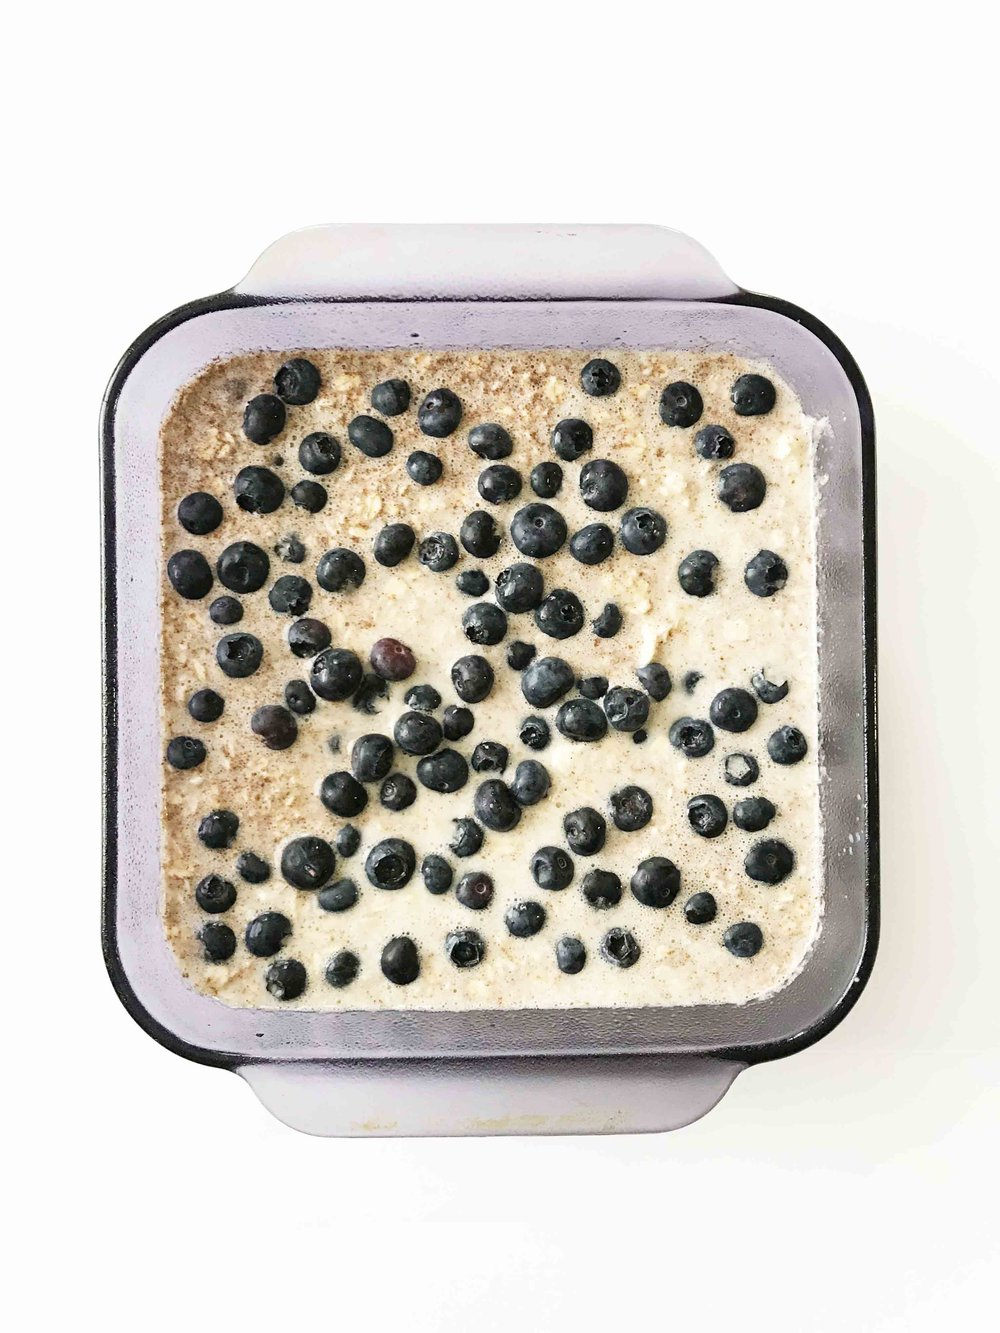 baked-blueberry-oatmeal5.jpg